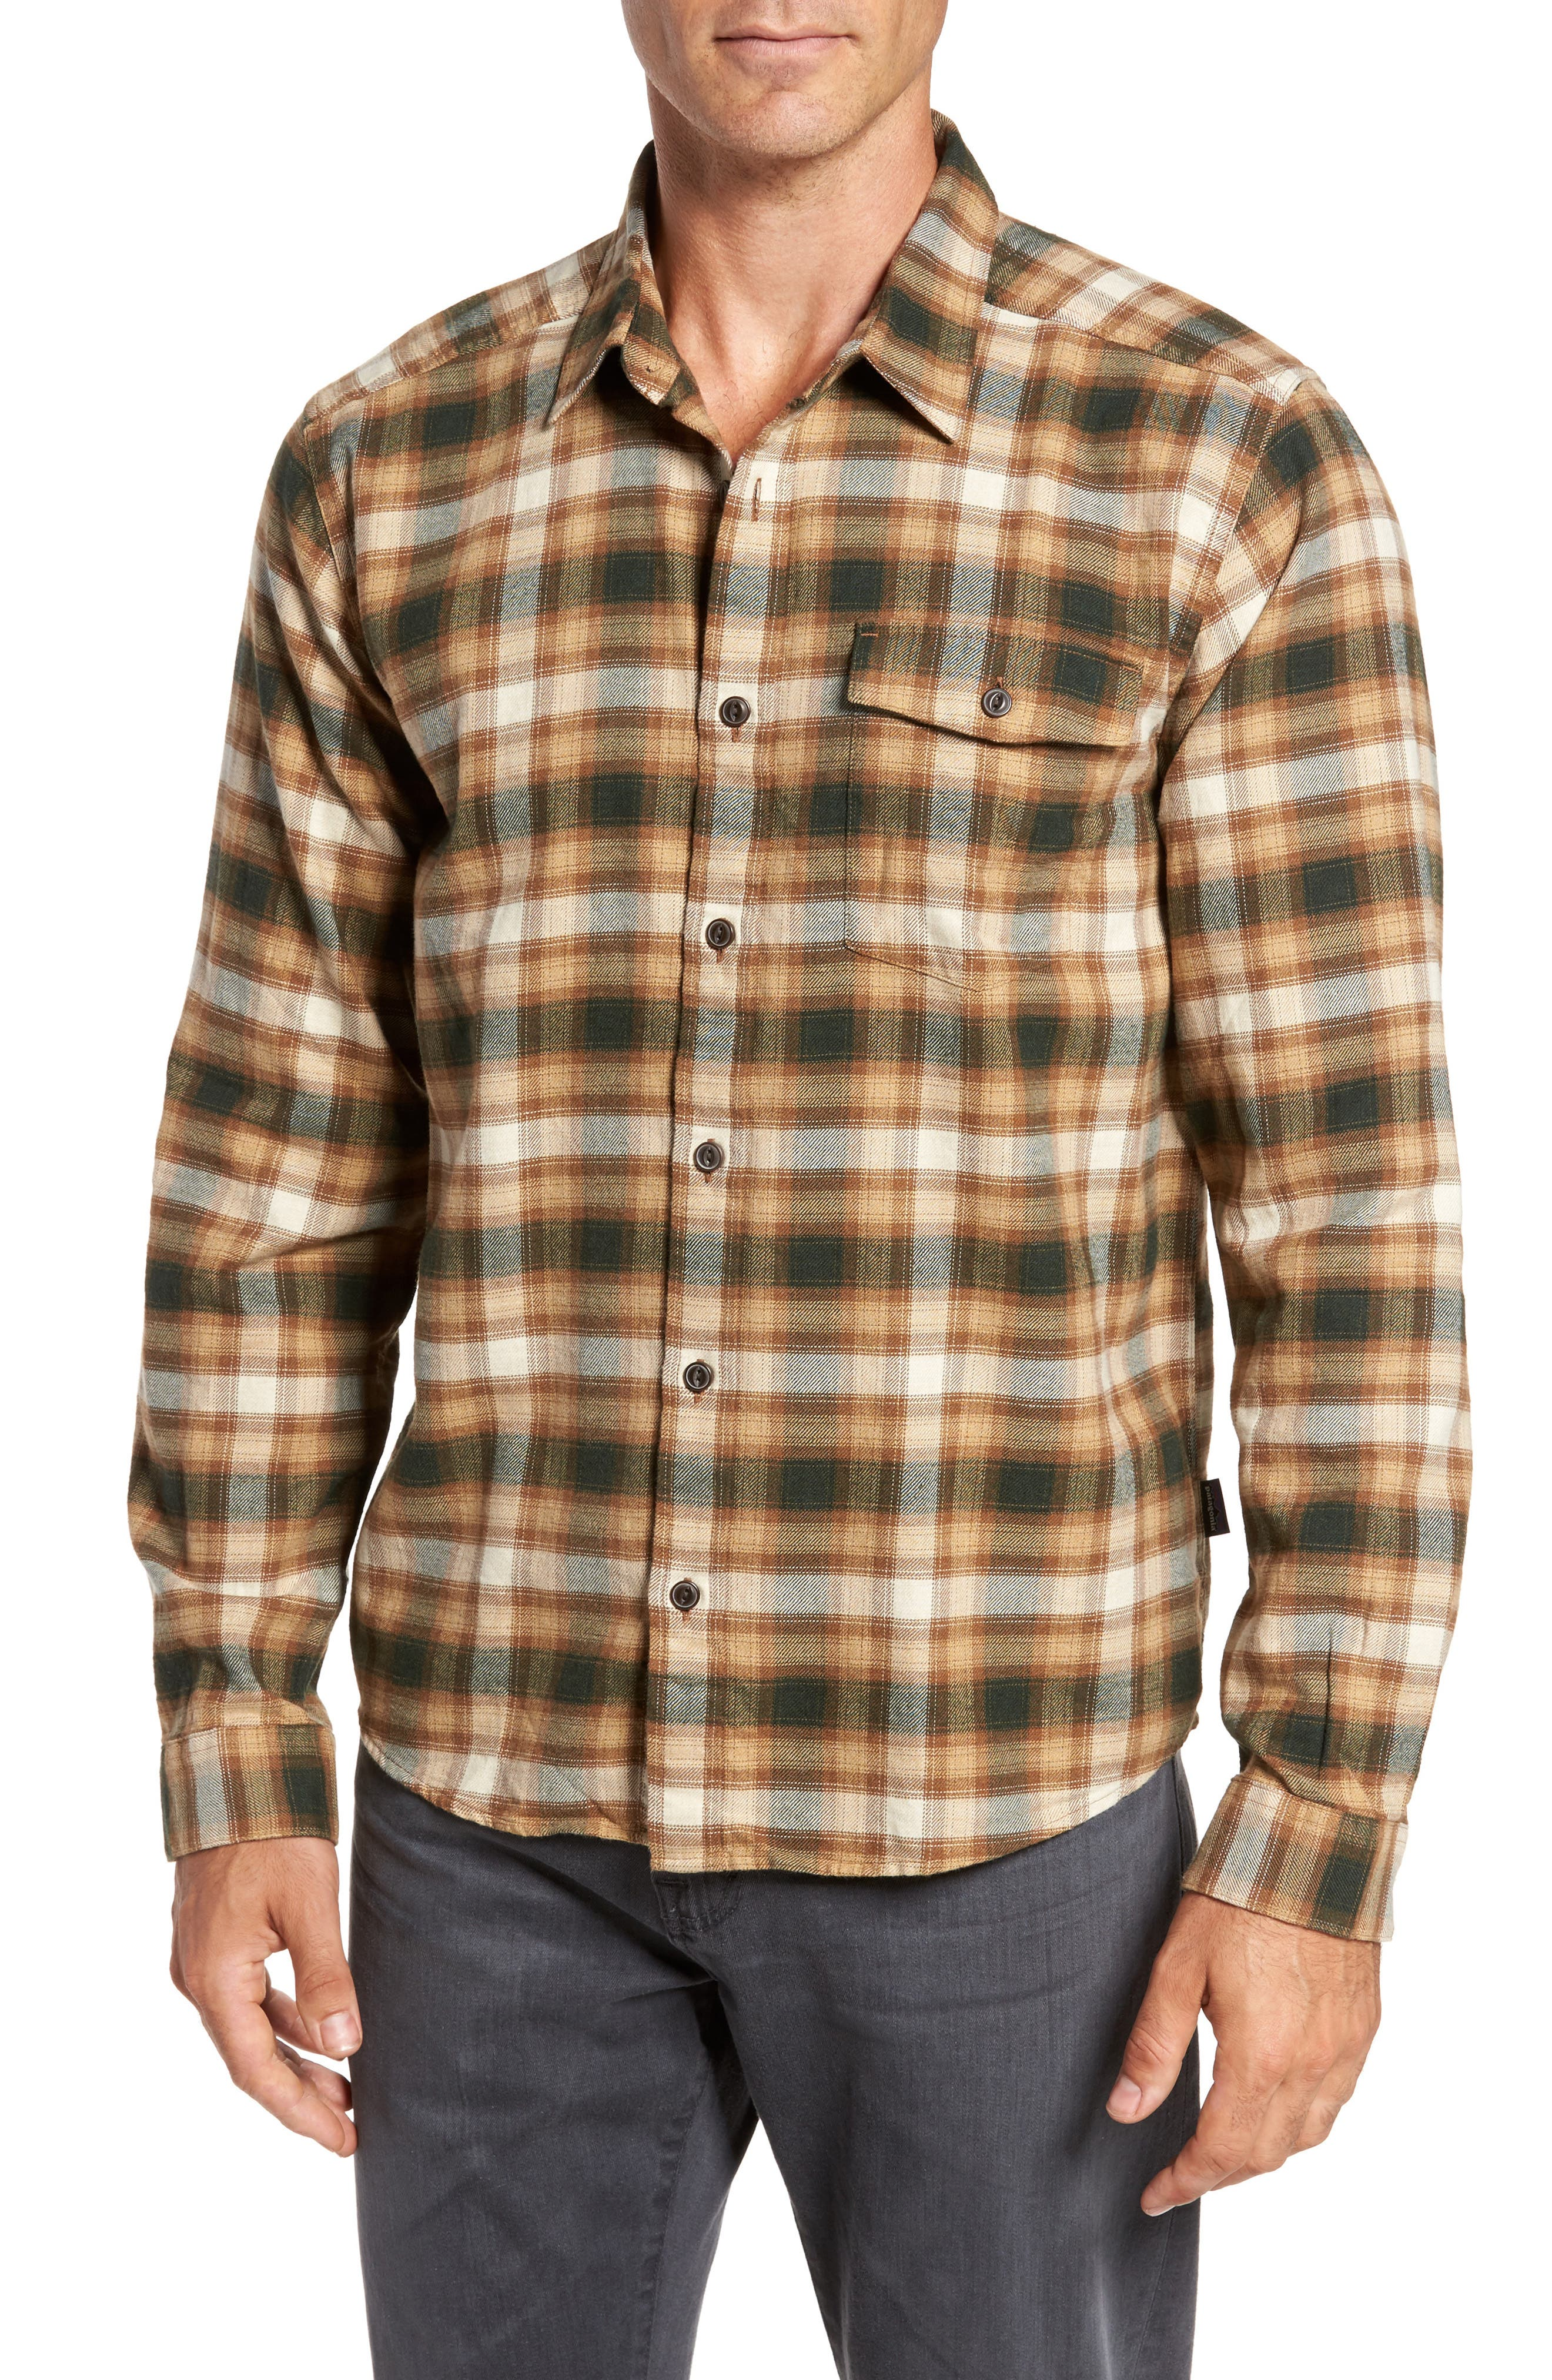 905aad0ac987 Patagonia Regular Fit Organic Cotton Flannel Shirt In Revival Bear Brown